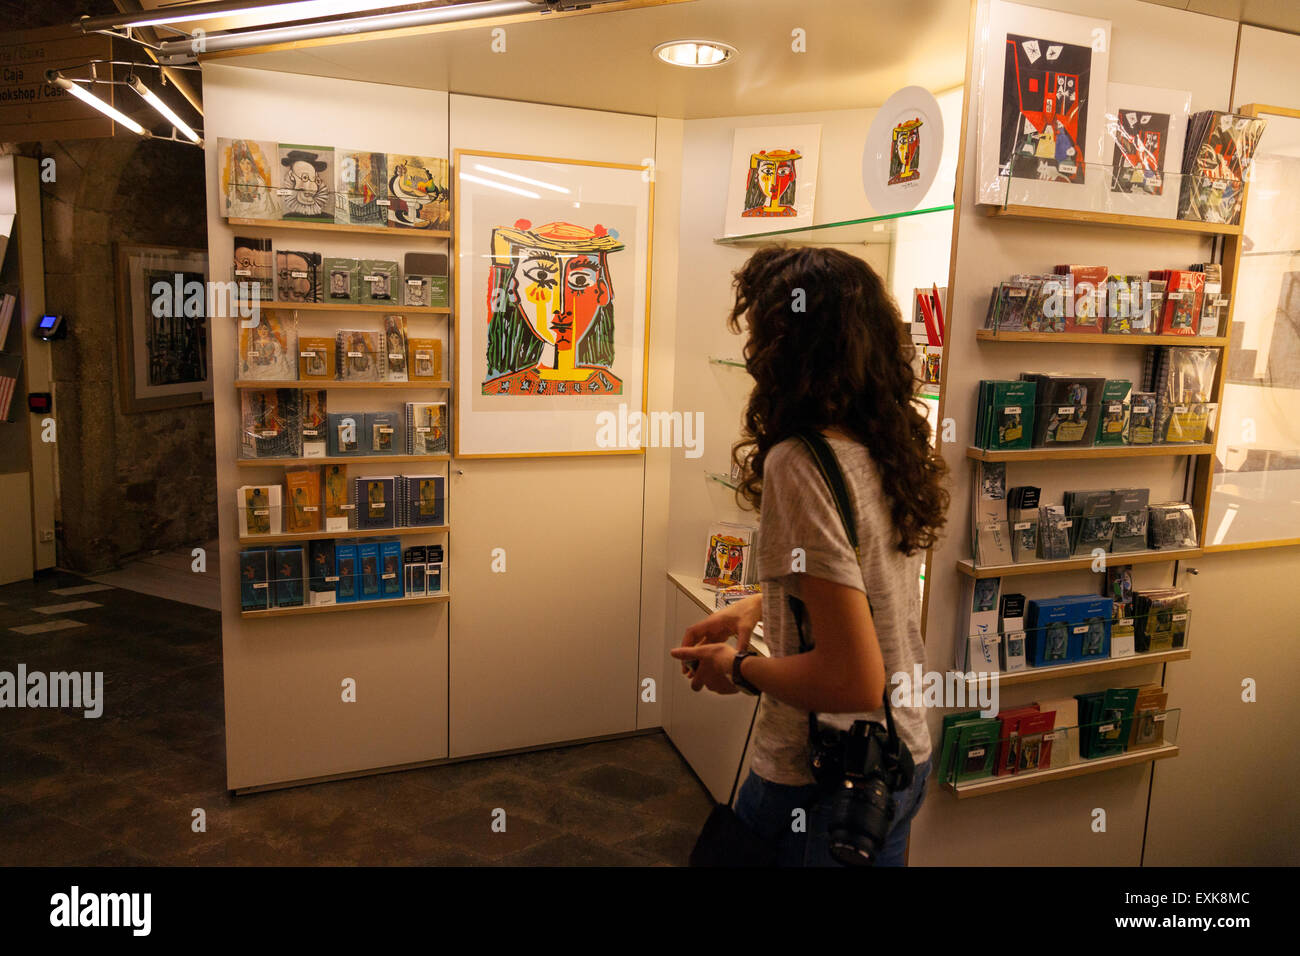 A tourist in the gift shop of the Museu Picasso ( Picasso Museum ), Barcelona, Spain Europe - Stock Image